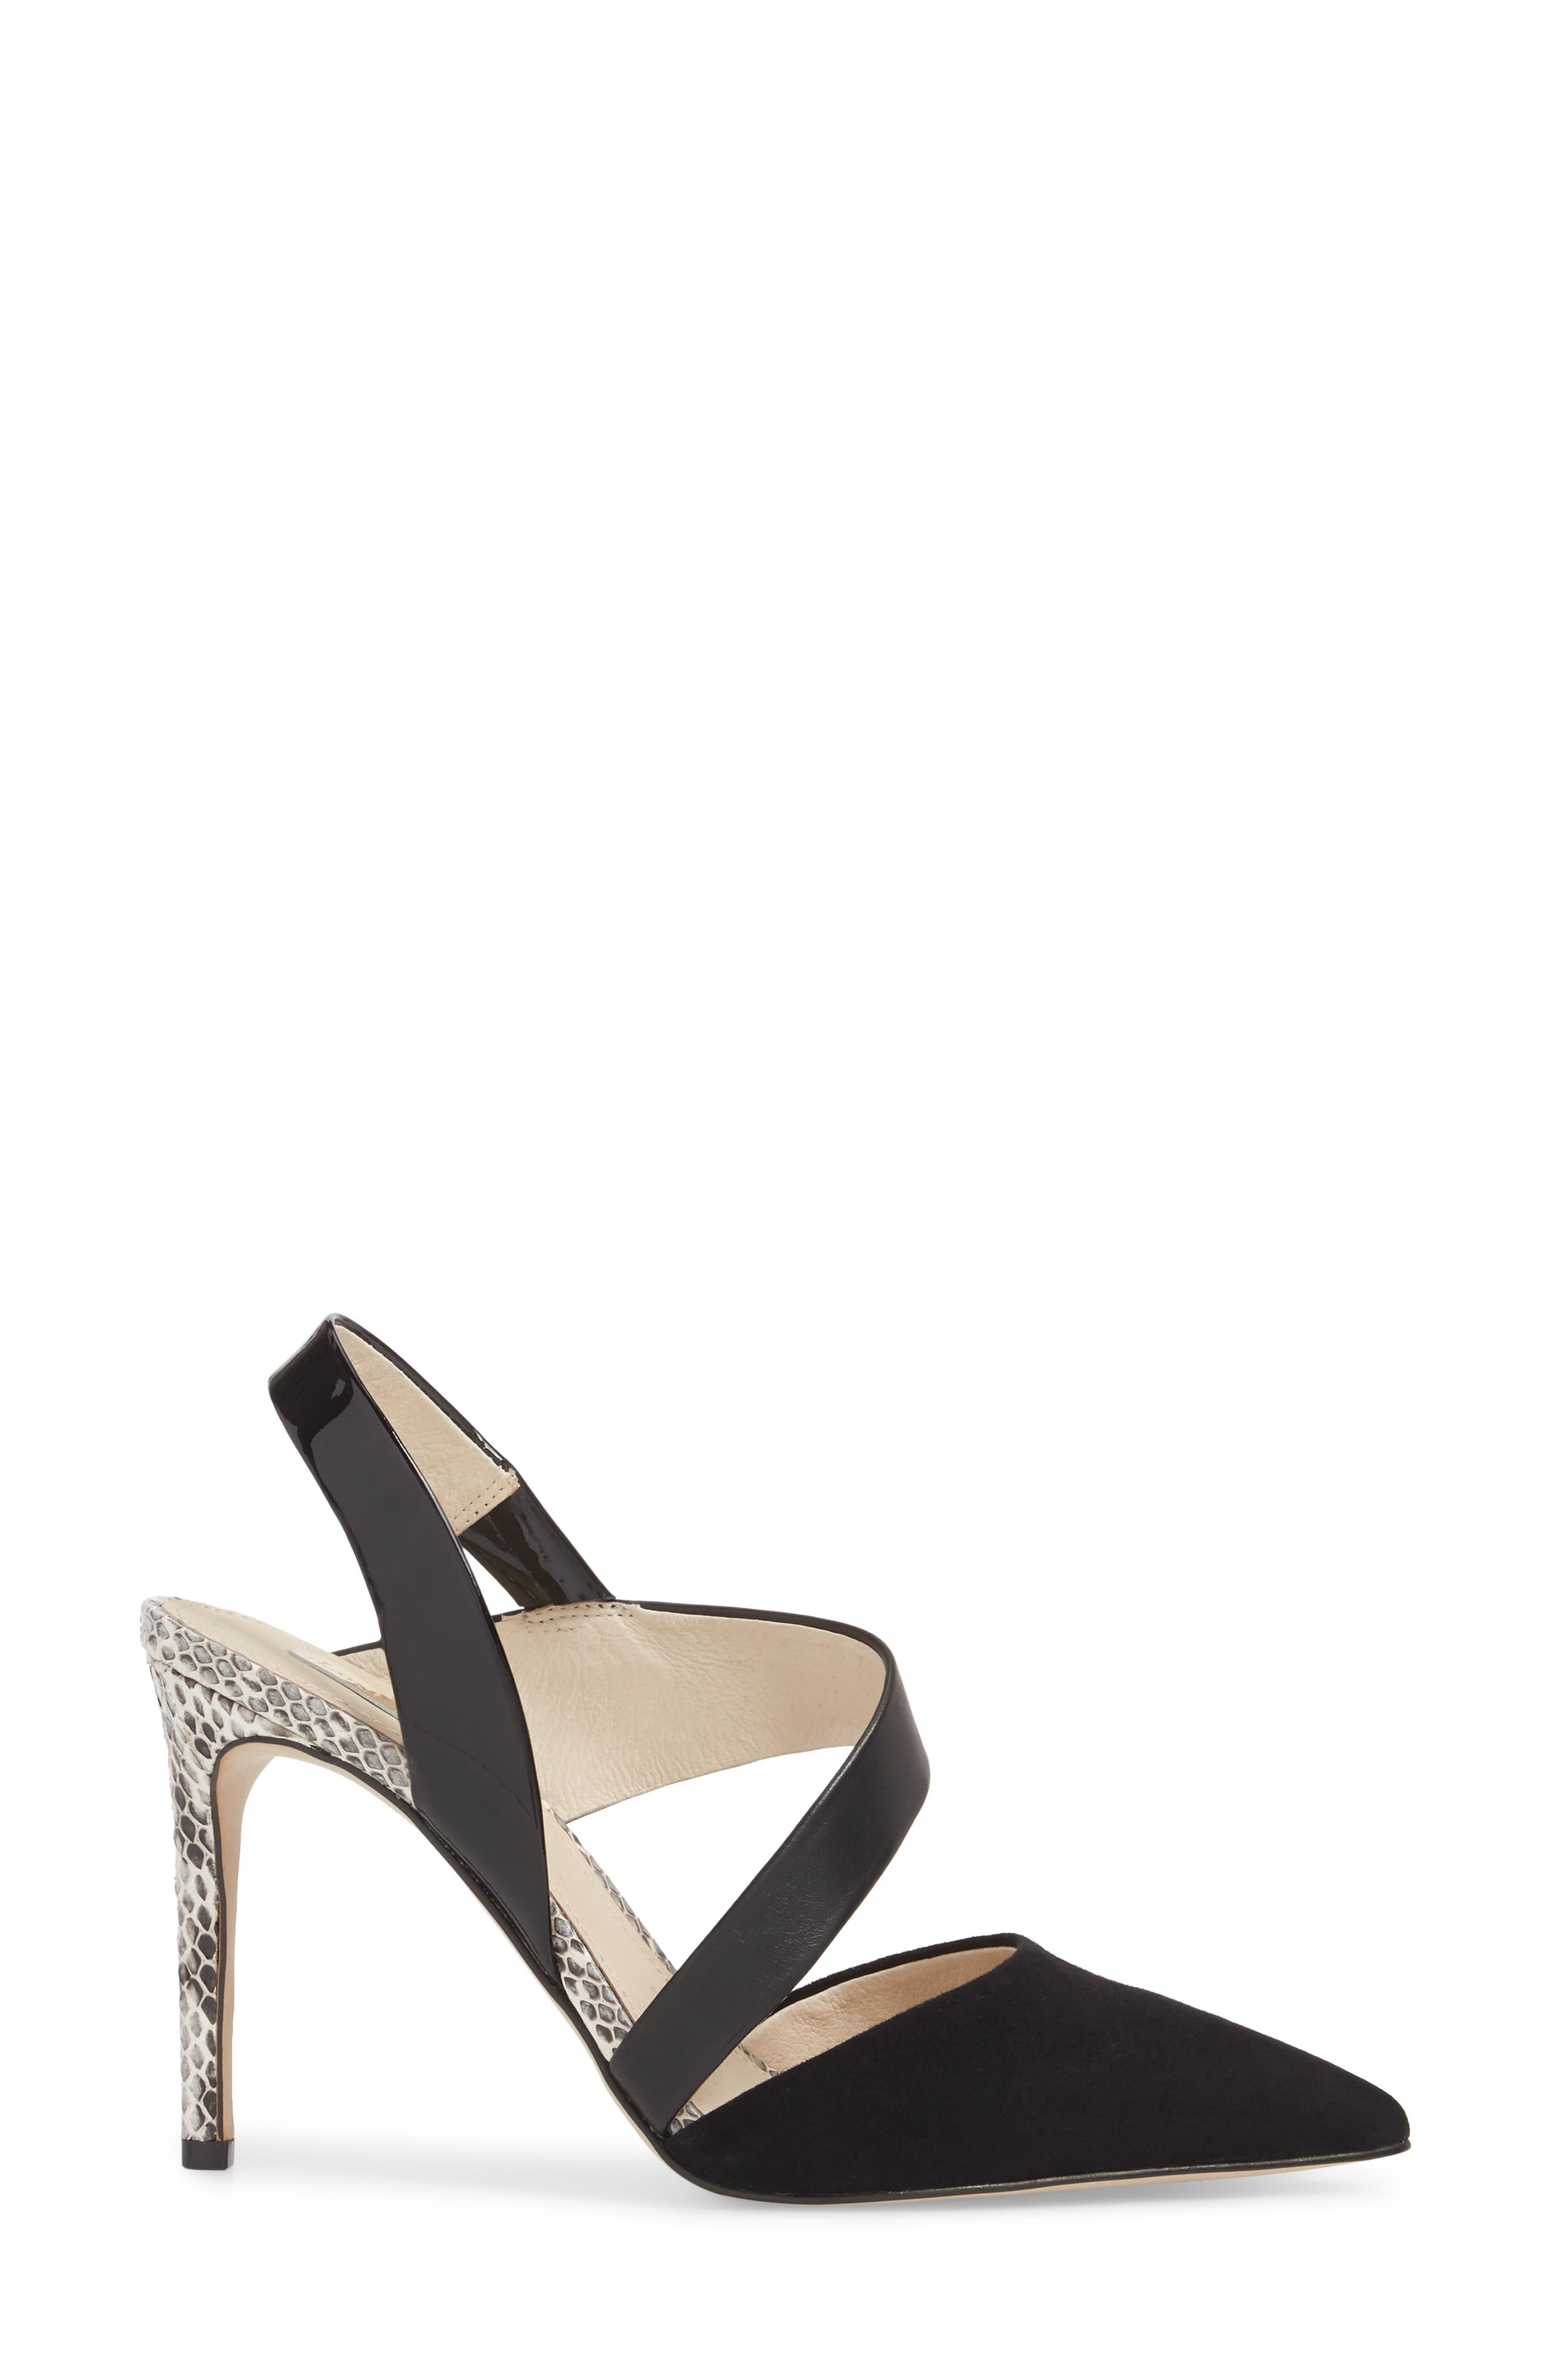 Jerry Pointy Toe Slingback Pump,                             Alternate thumbnail 3, color,                             BLACK SUEDE